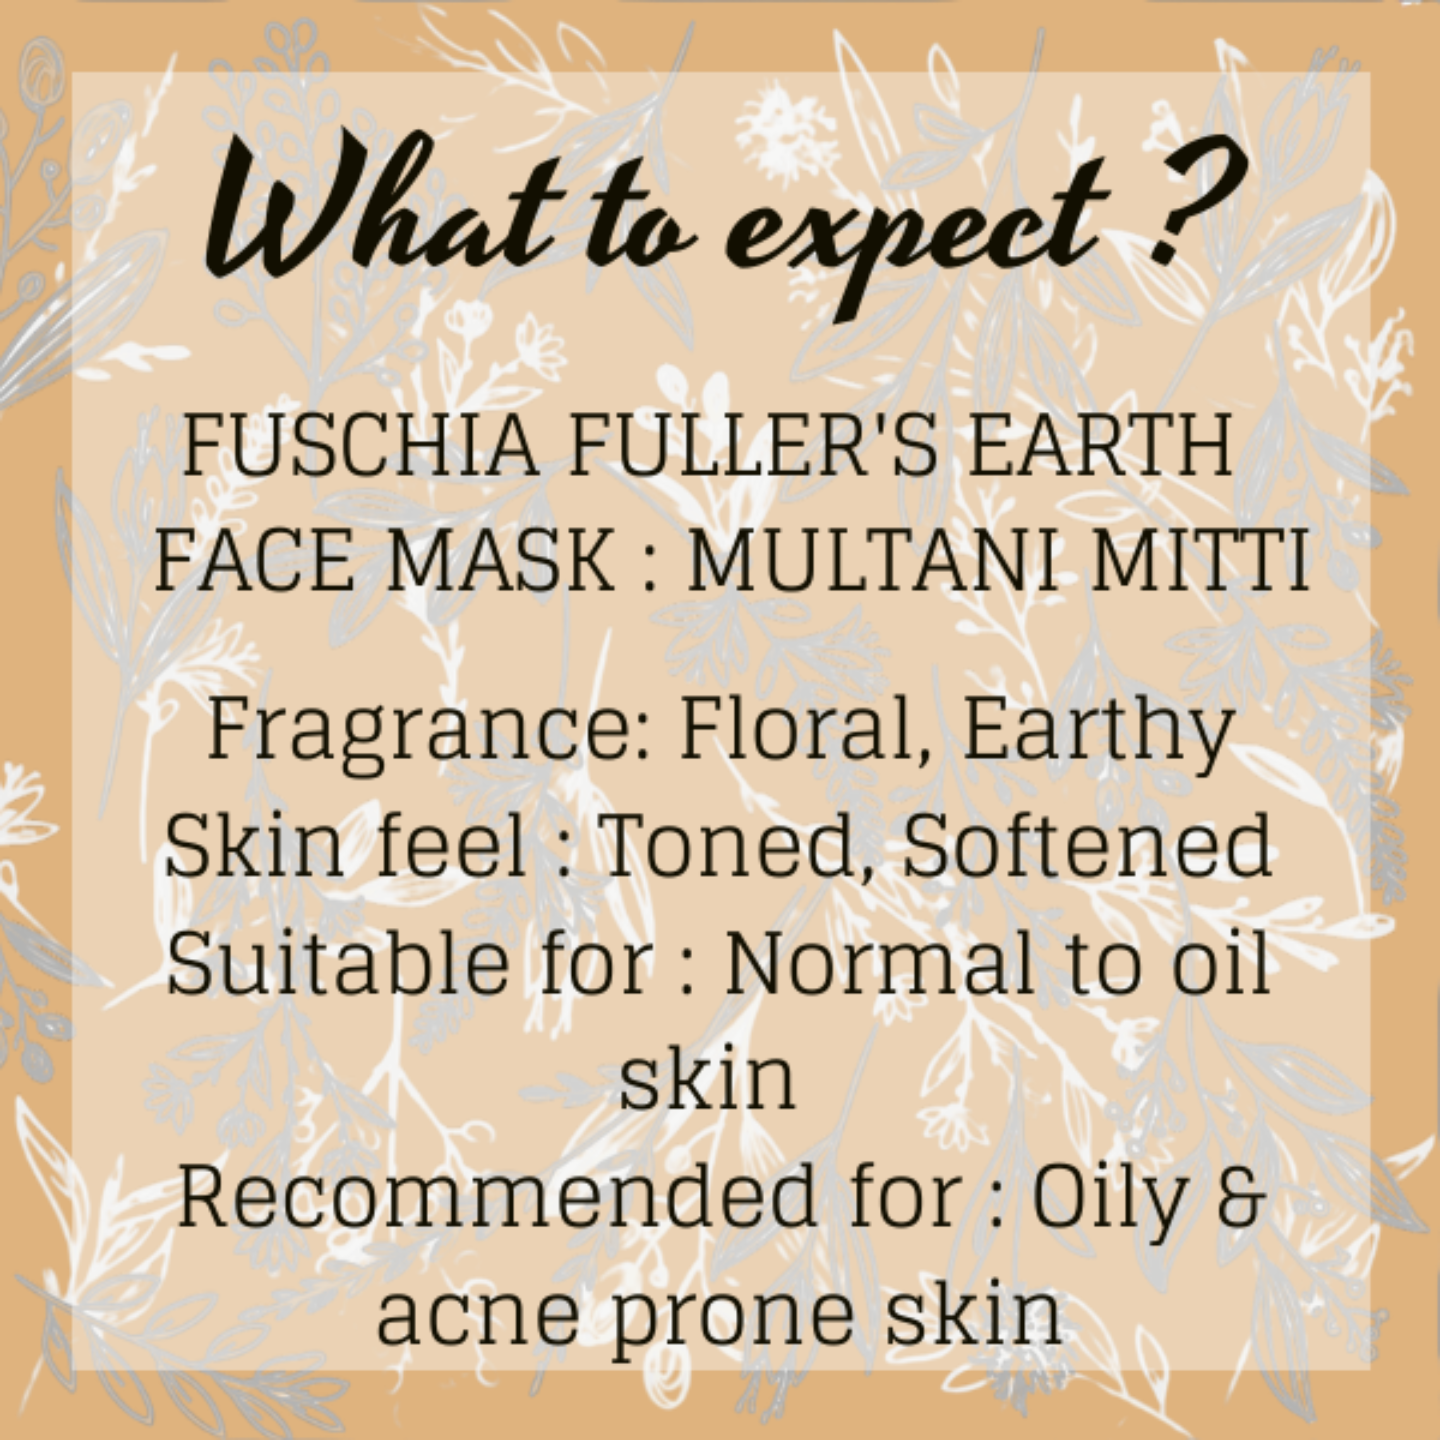 Fuschia Fuller's Earth Face Mask - Multani Mitti - 100g